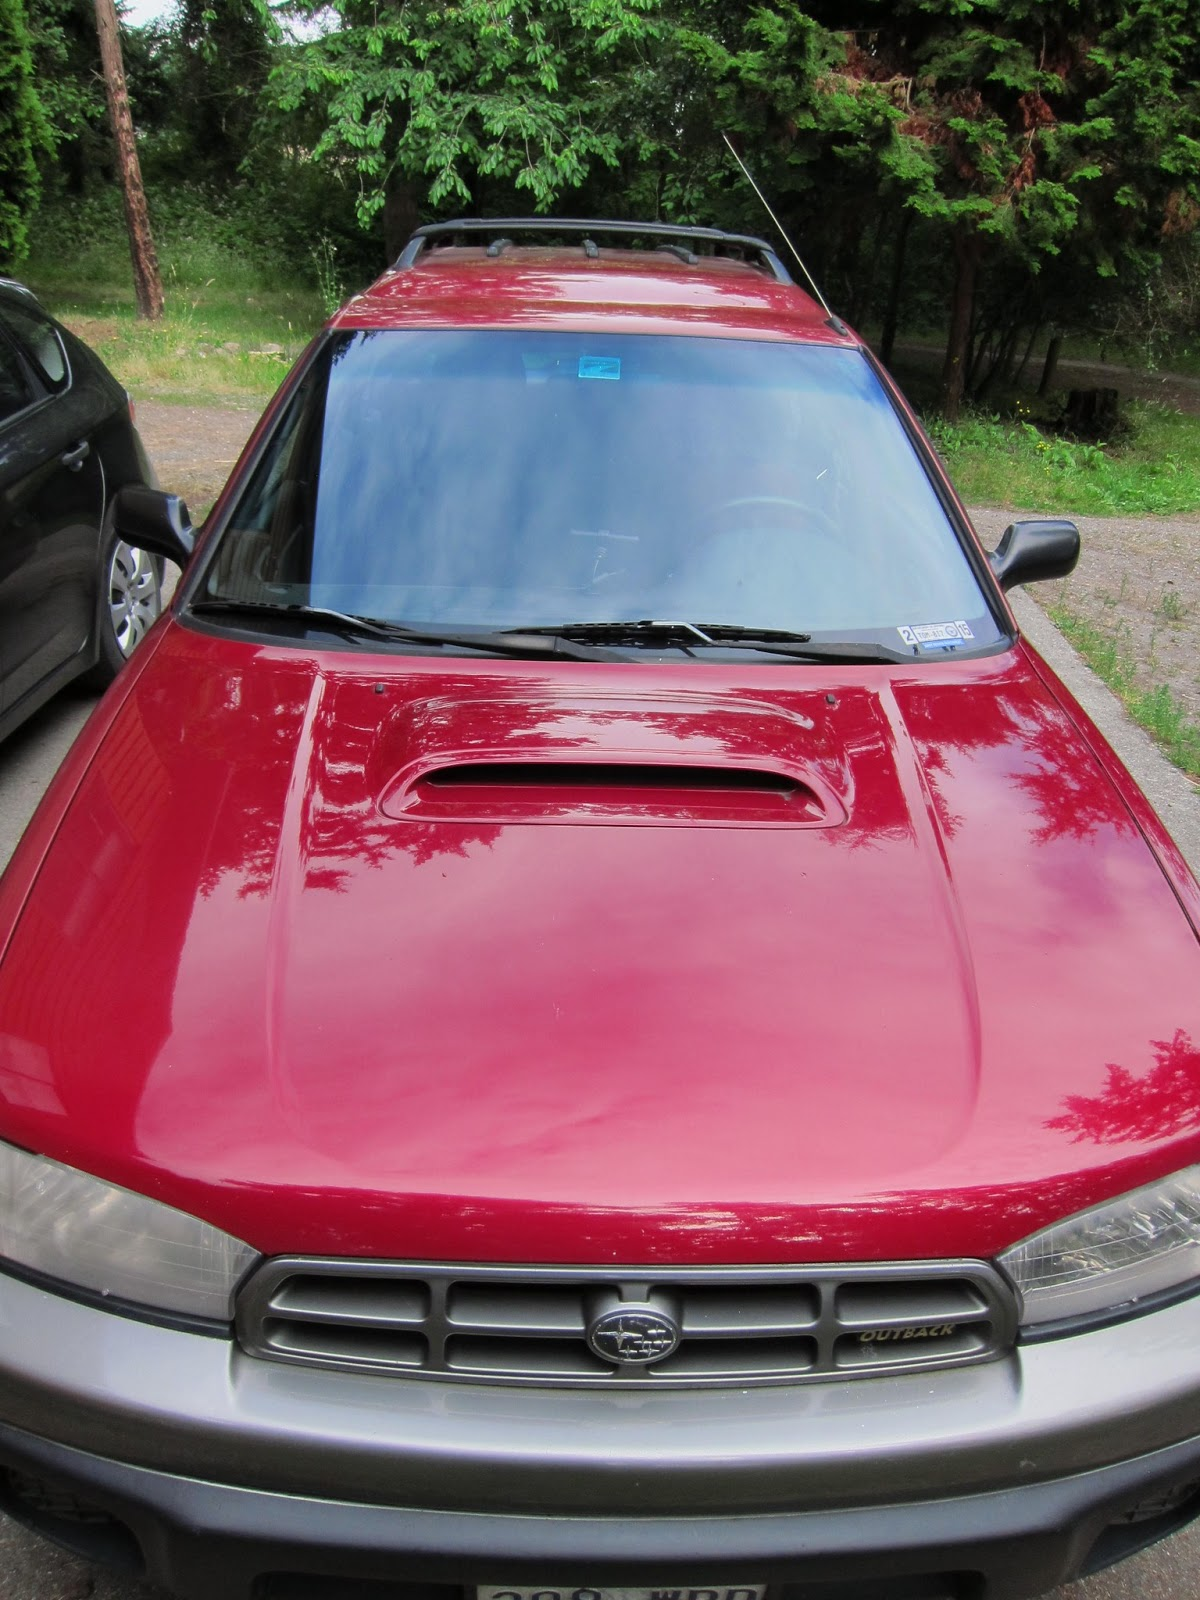 Red Crow Gear Dual Battery System In A 1998 Subaru Legacy Outback Limited